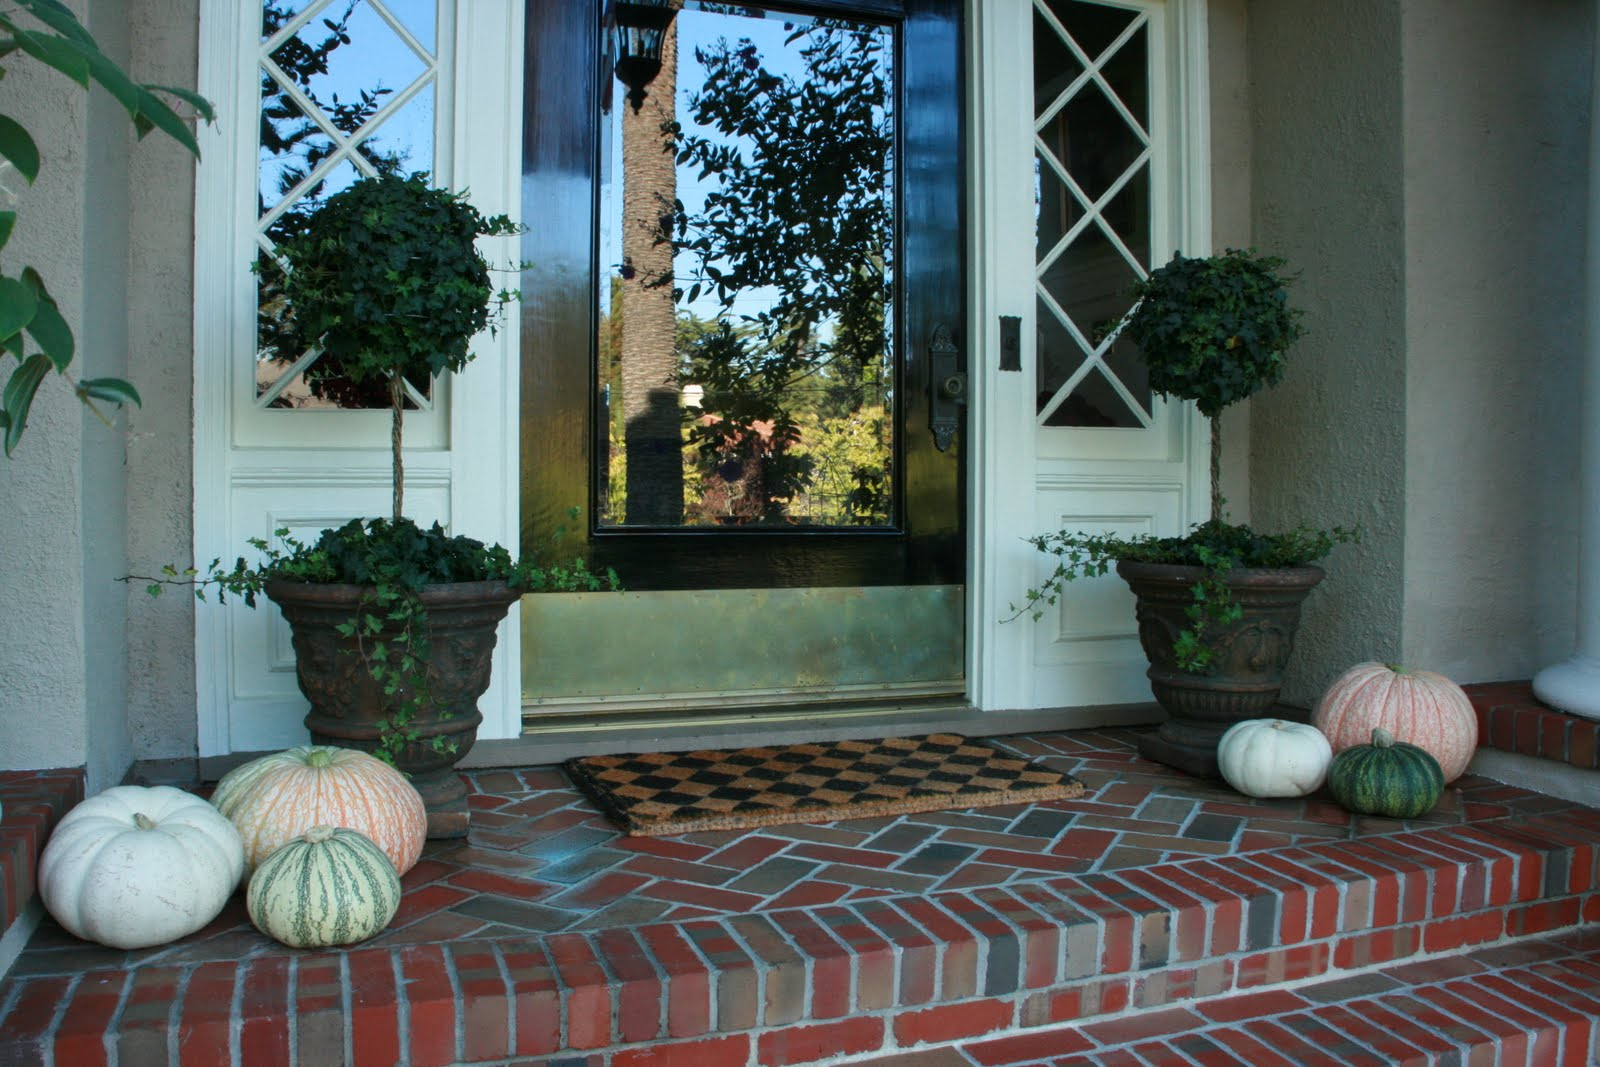 Vignette Design Accessorizing With Ivy Topiaries